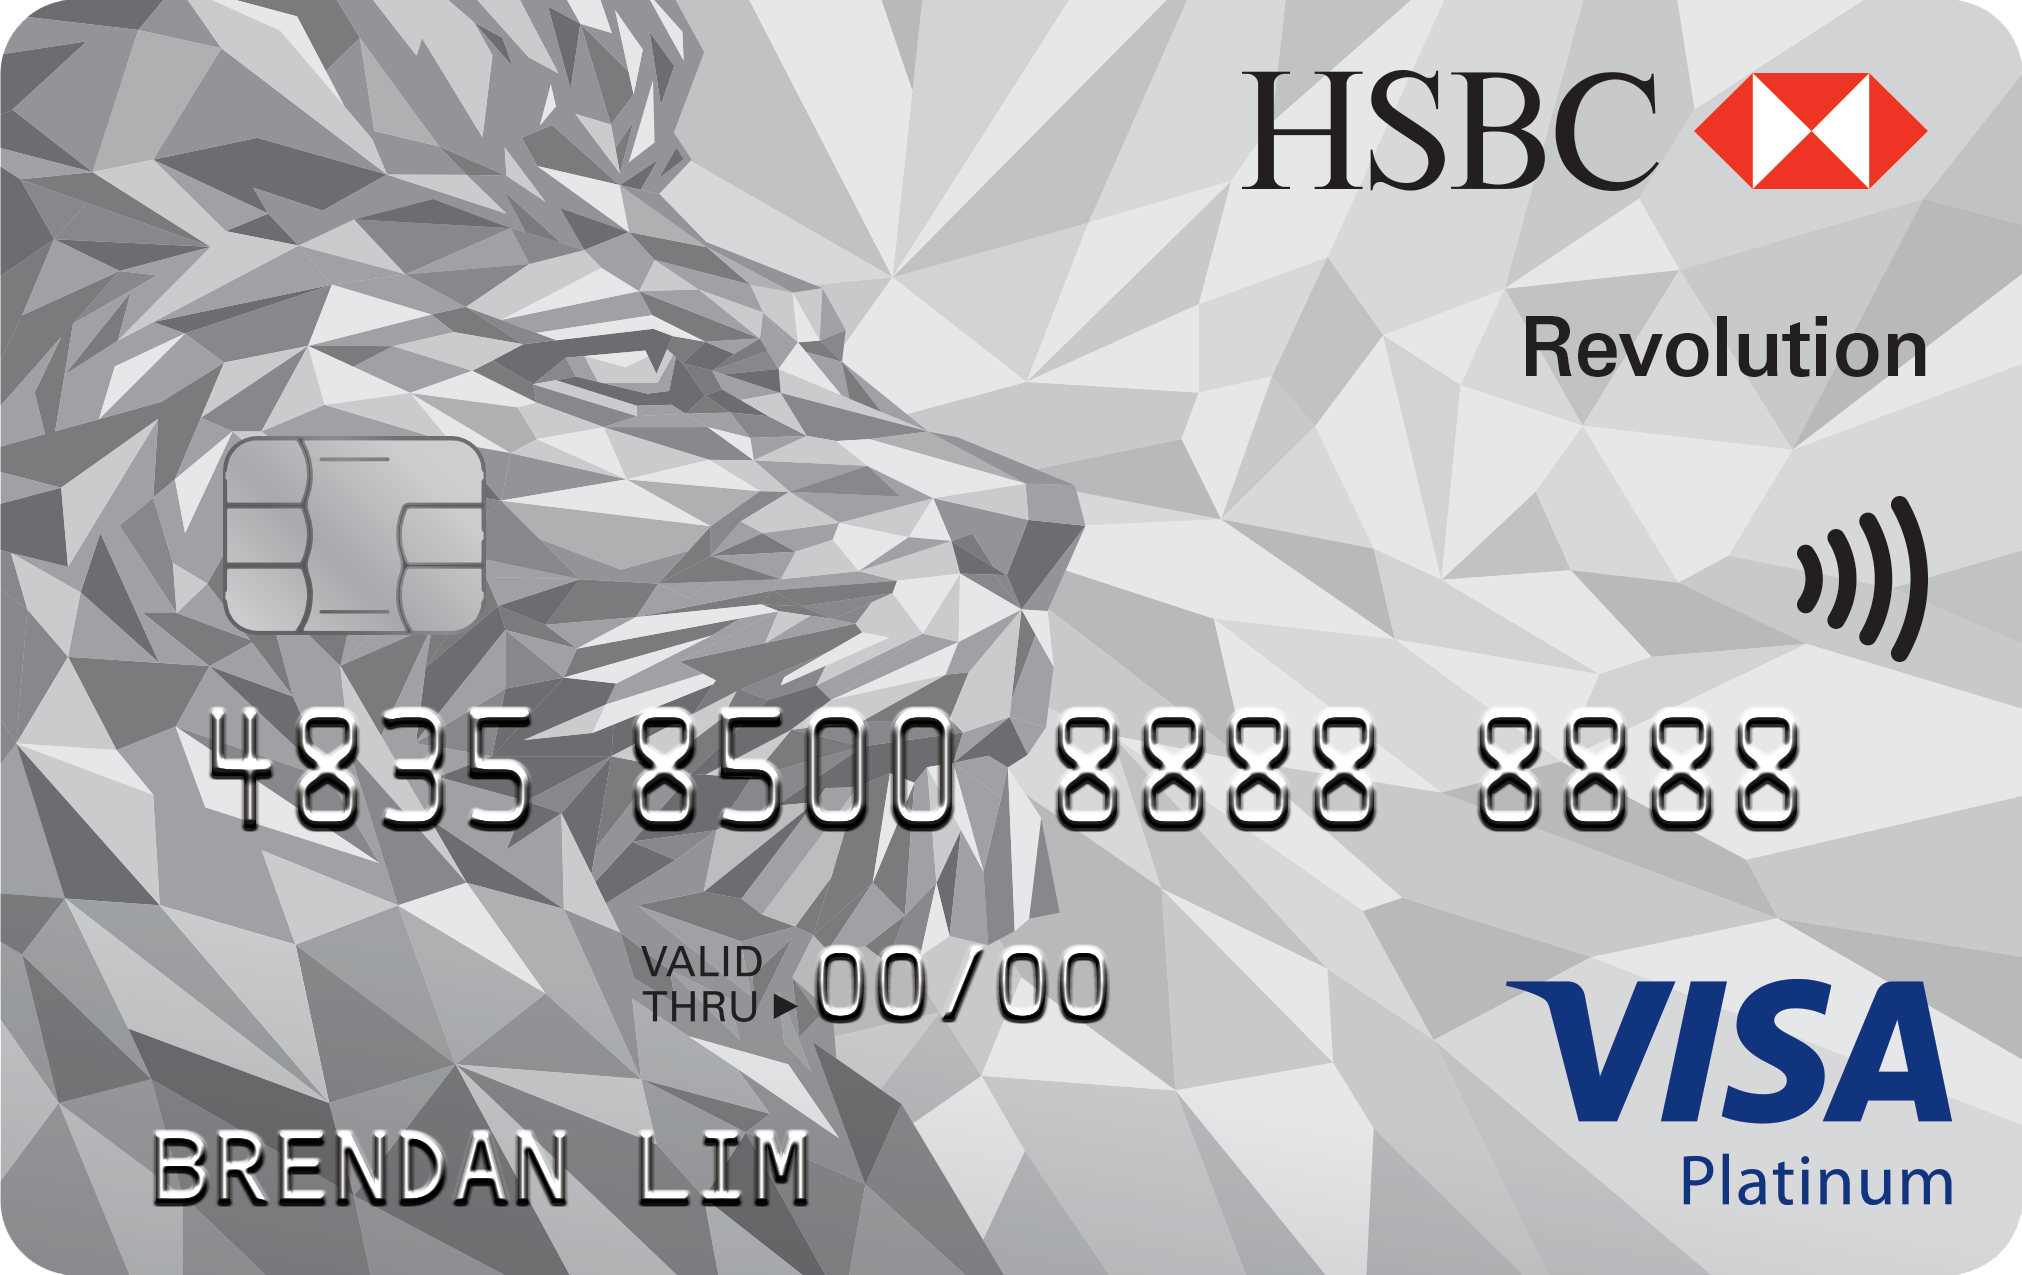 HSBC-Revolution Card